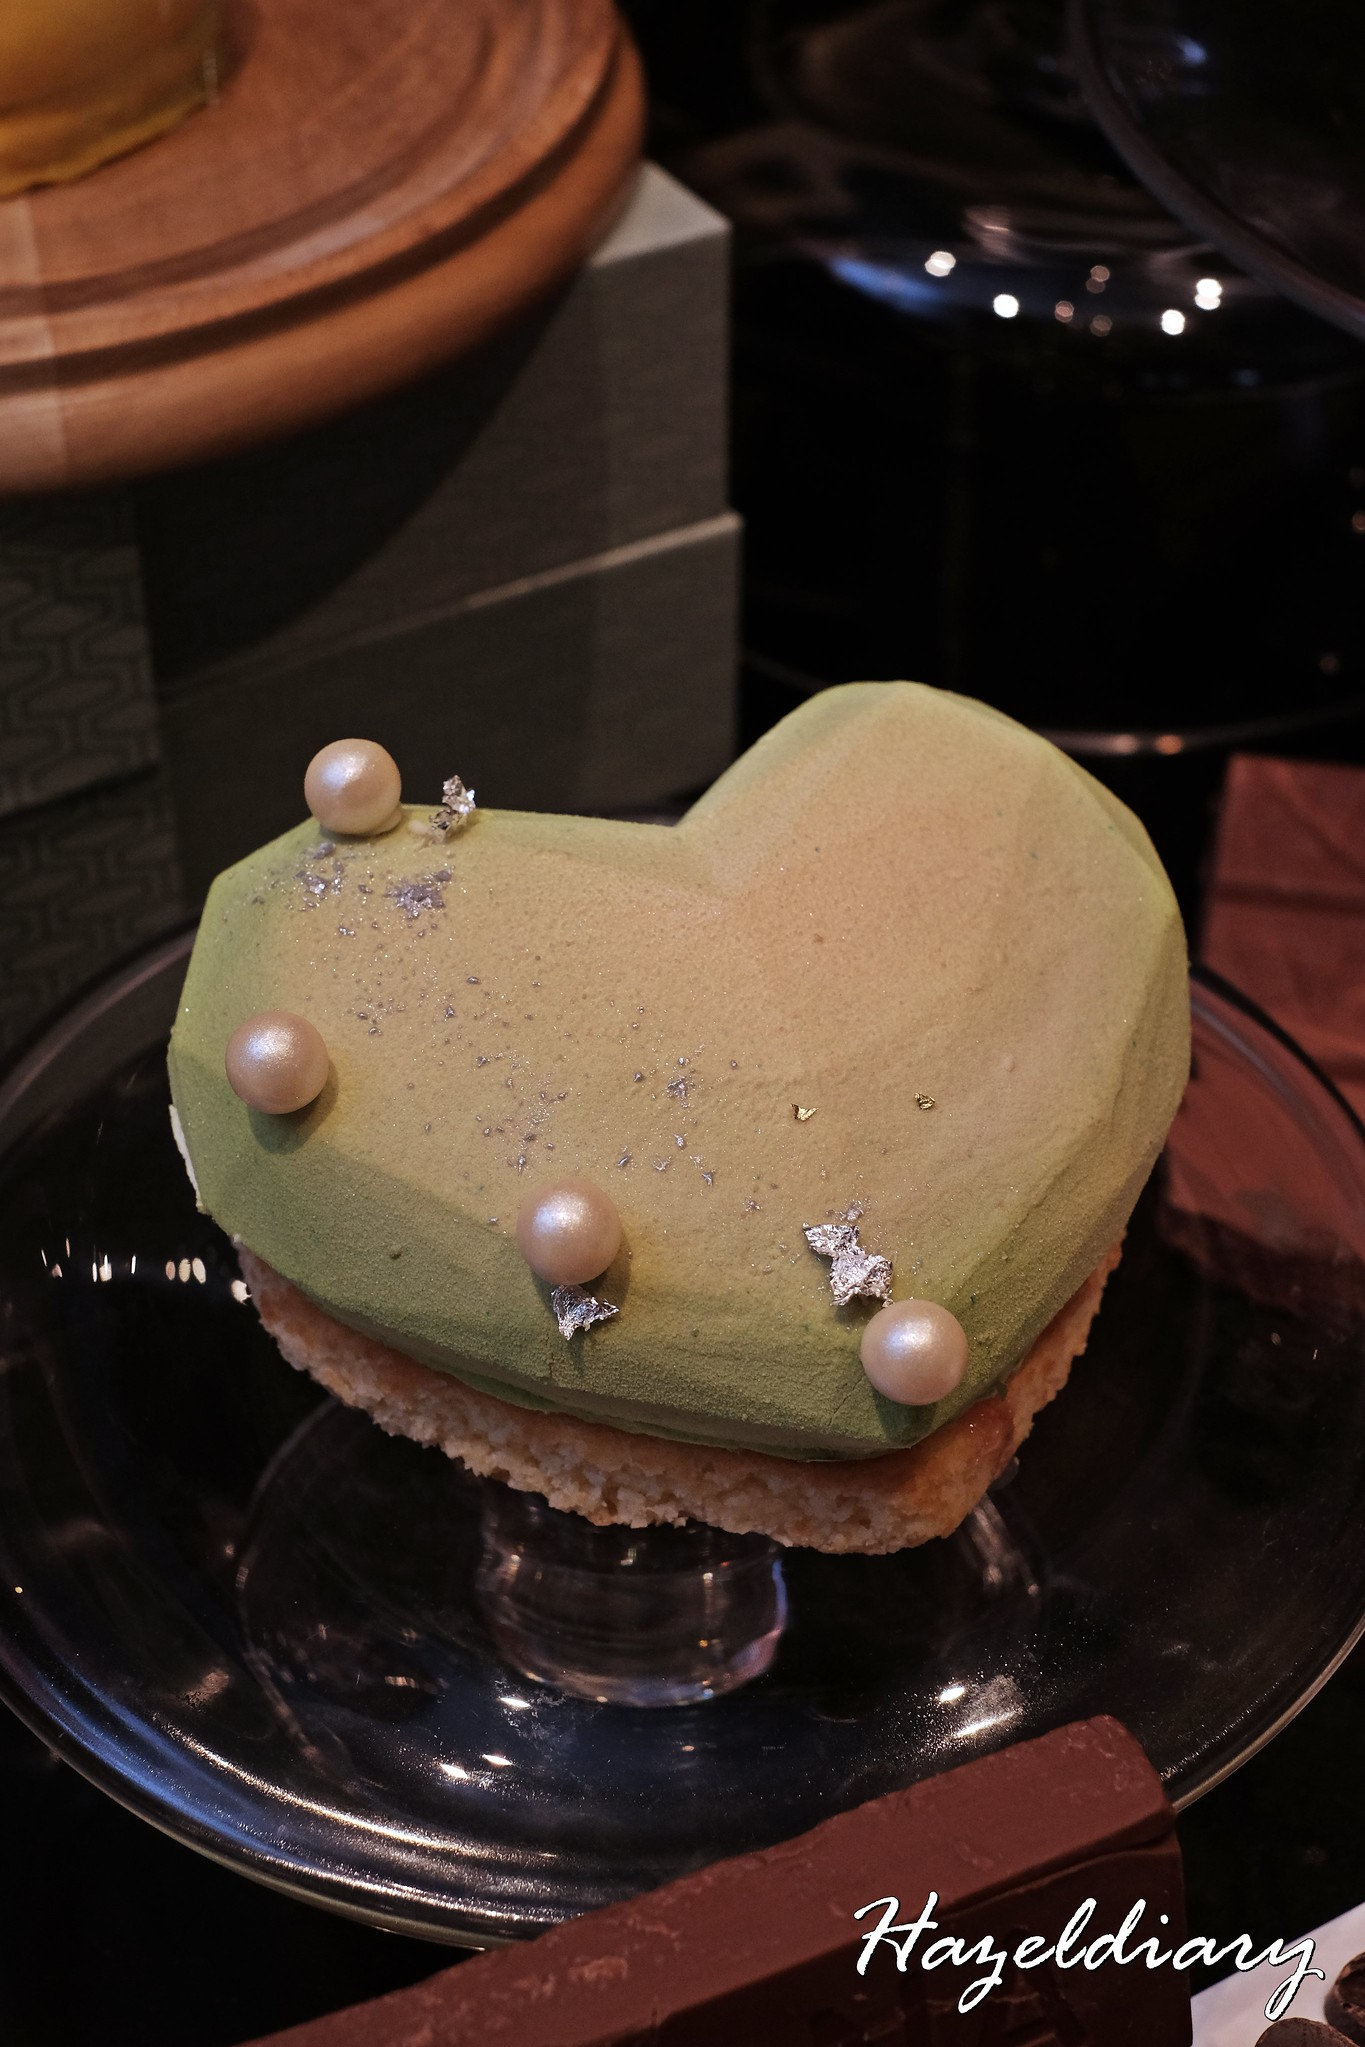 D9 Cakery of Hilton Singapore- Rhubarb Origami Amour